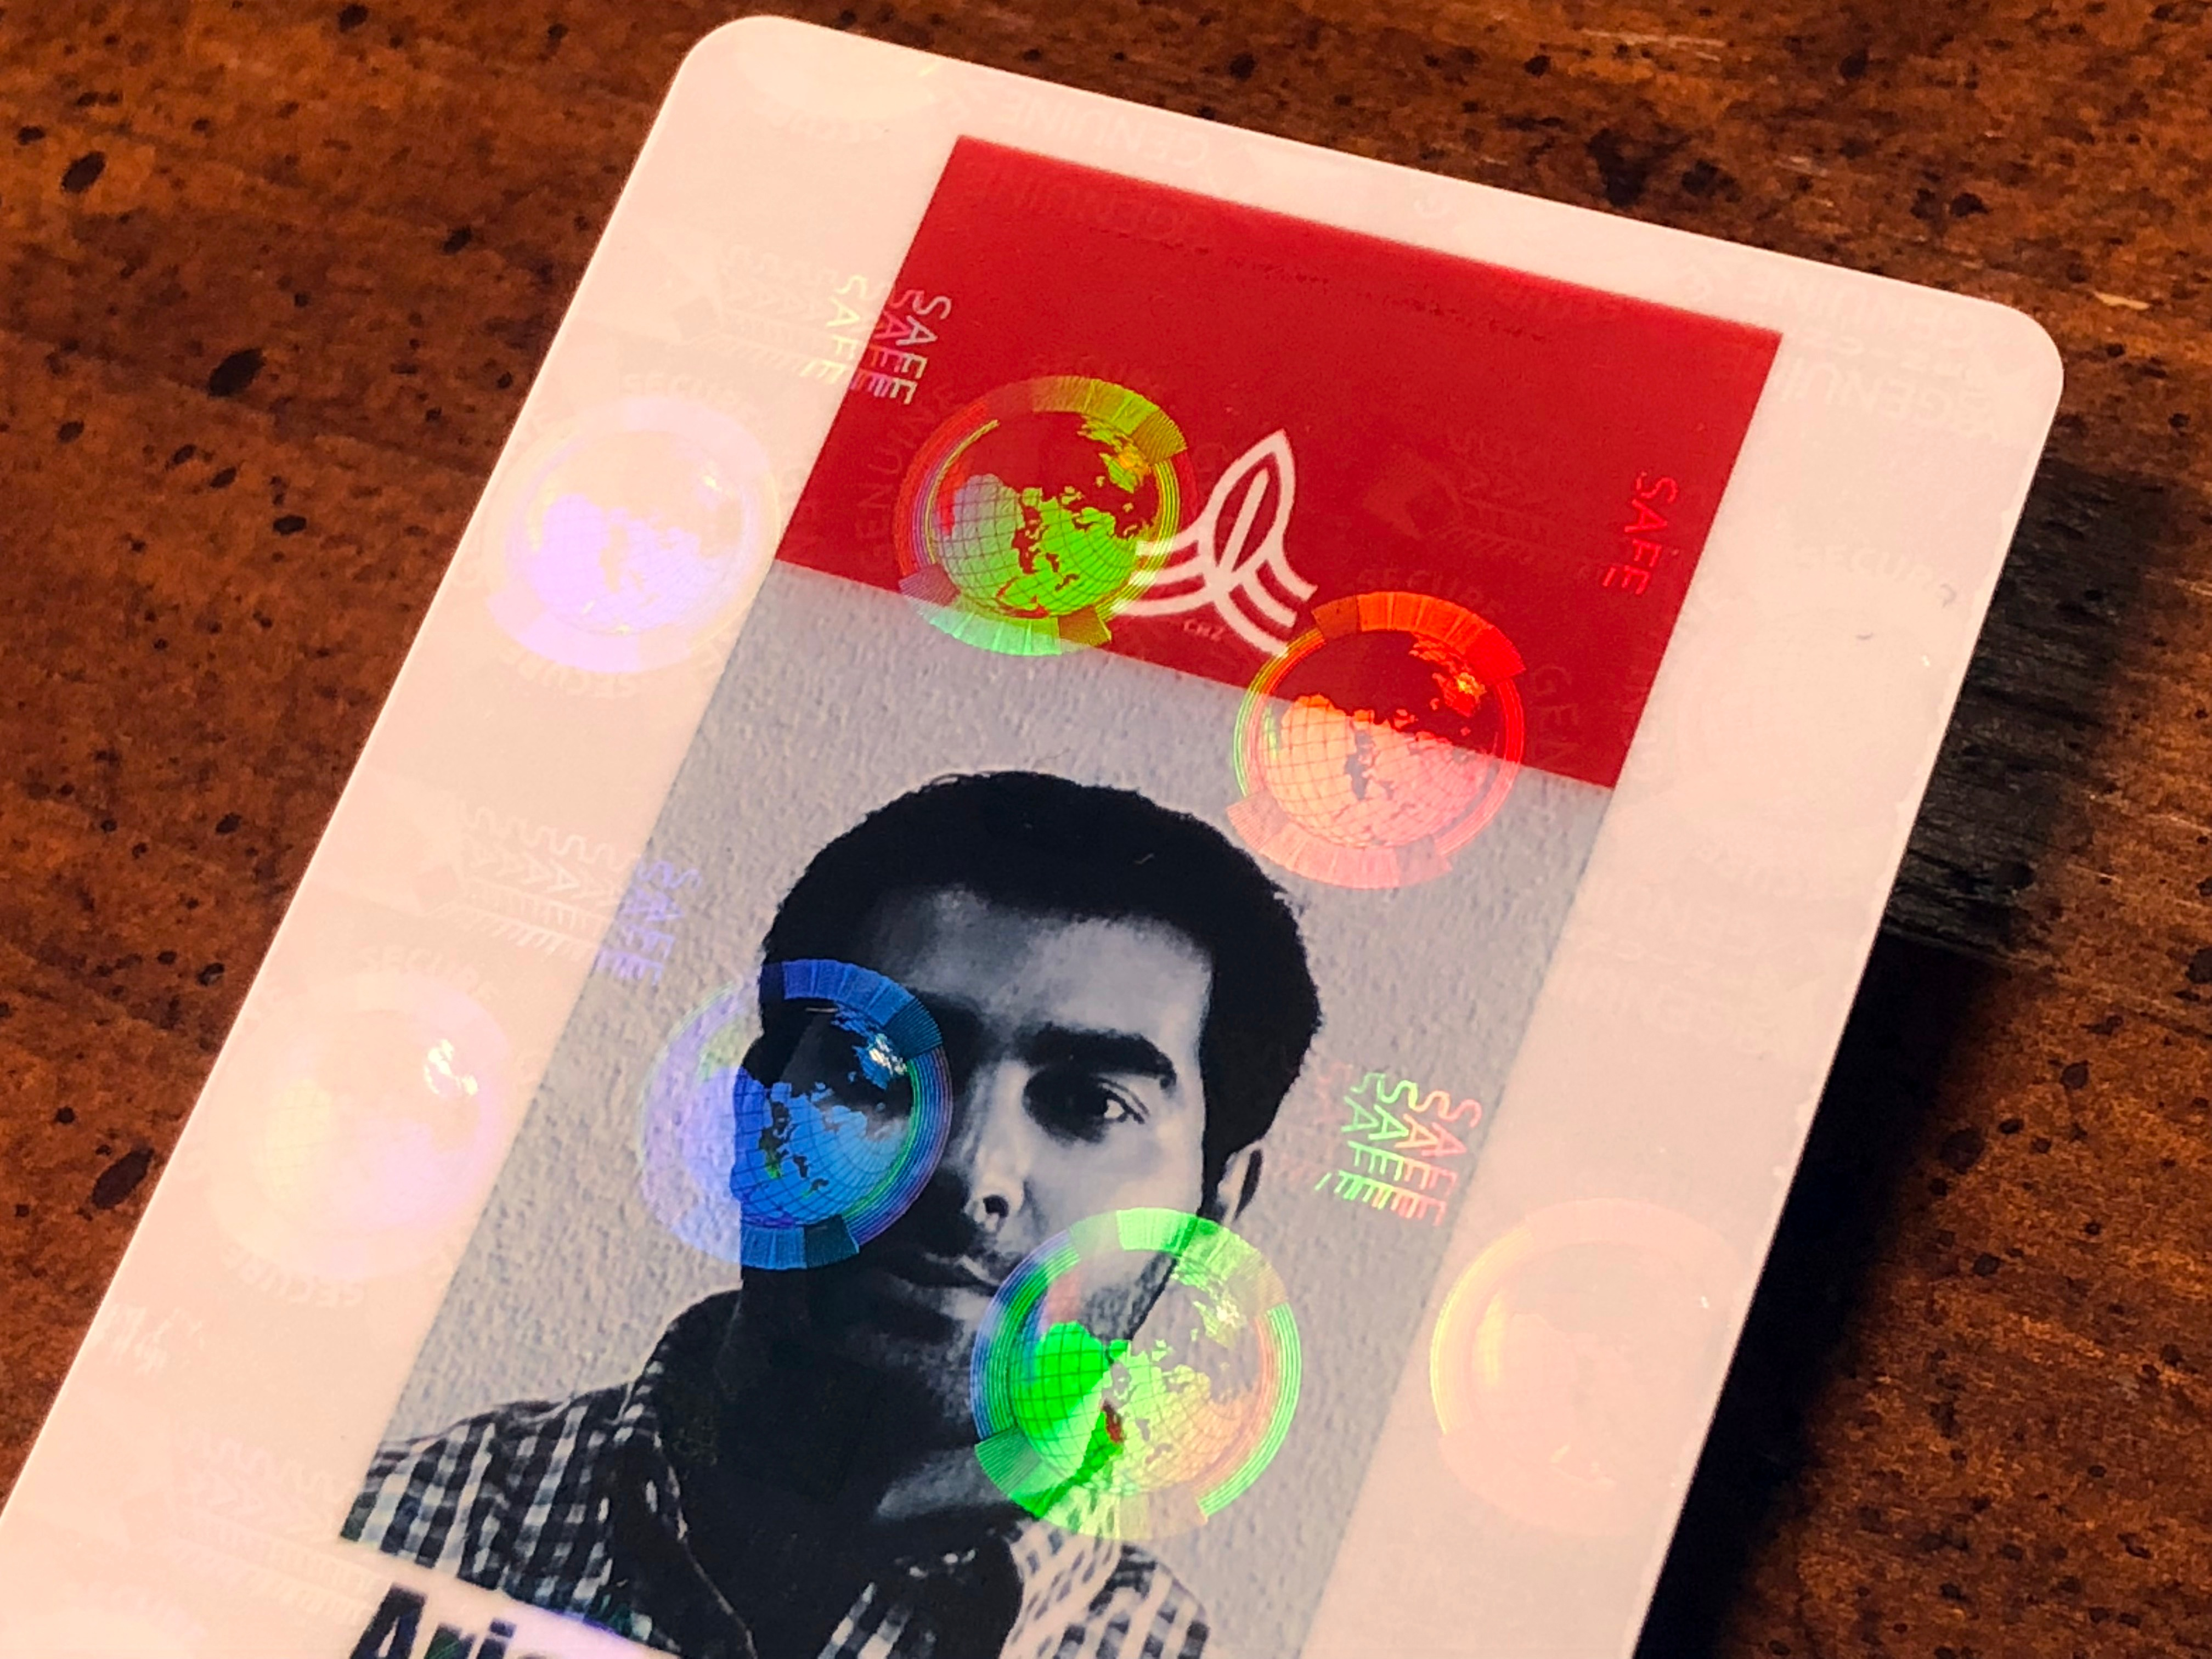 ID Badge Security: Hologram, Foil Stamps & Watermarks